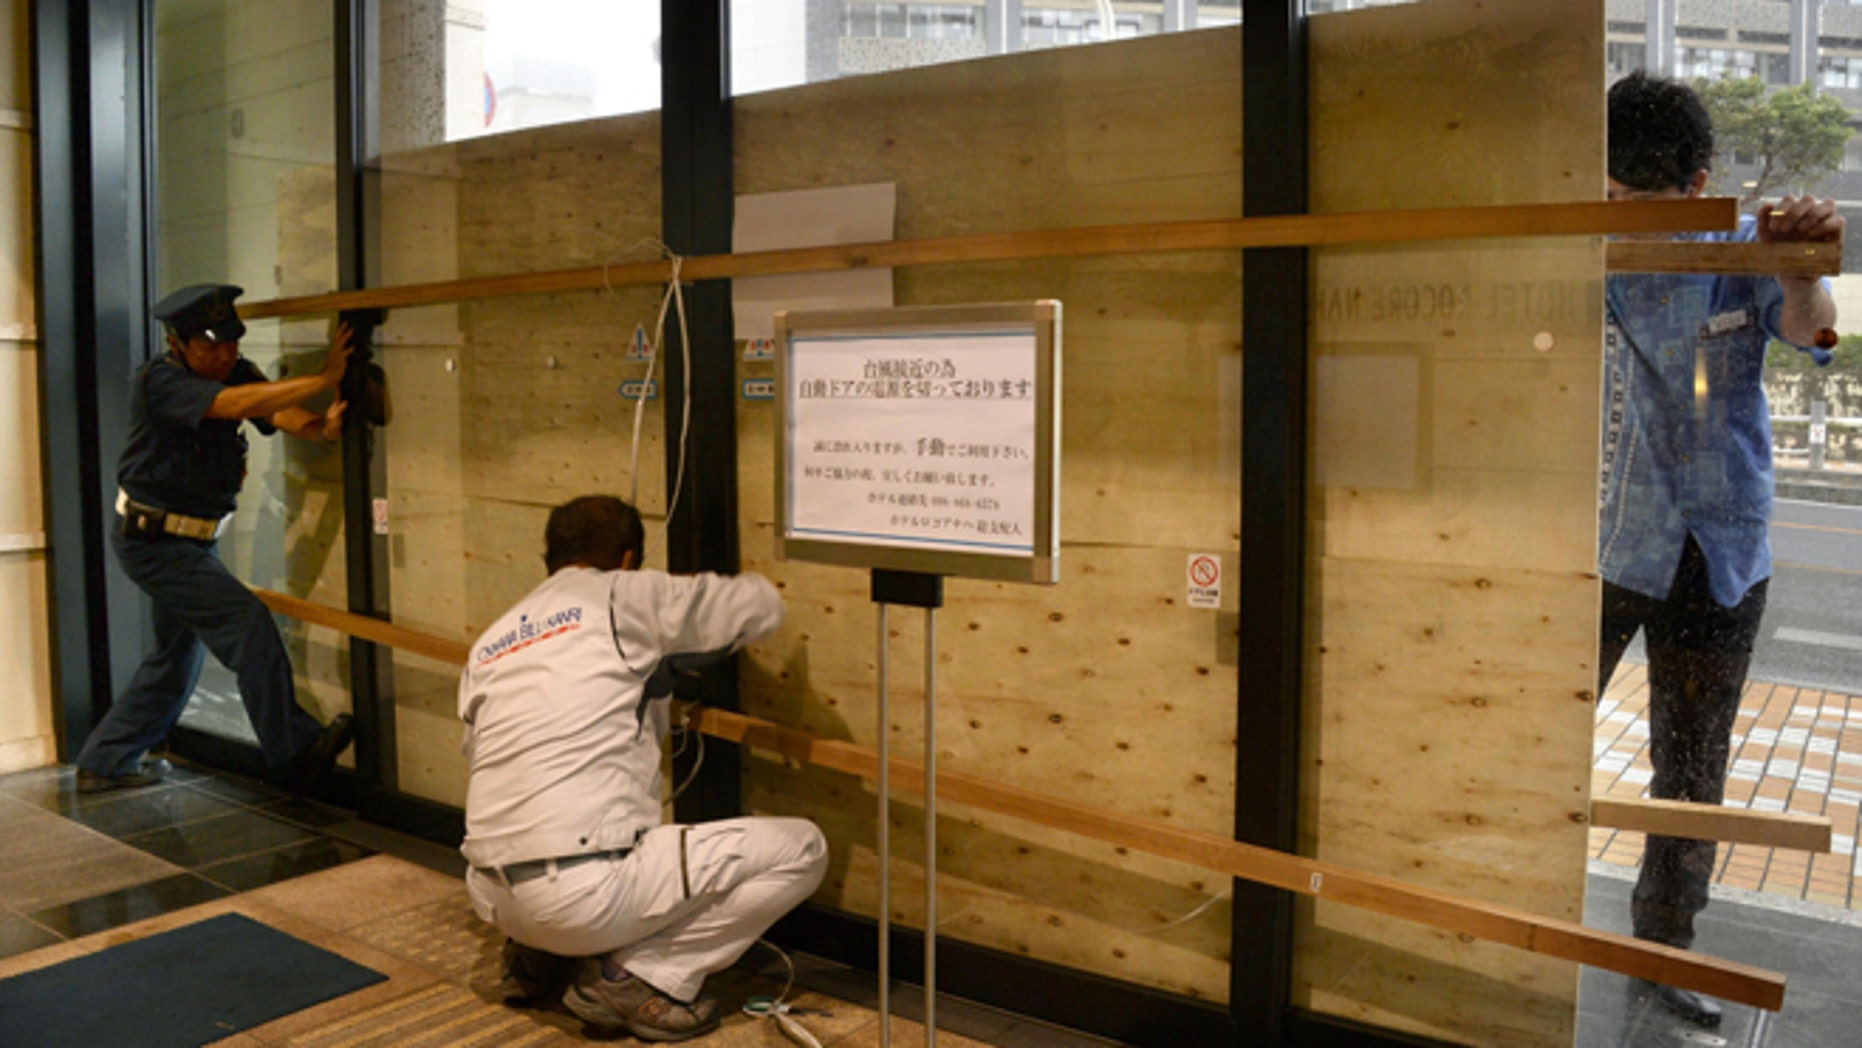 Oct. 11, 2014: Hotel employees and a guard secure its entrance door with a plywood board in preparation for approaching typhoon Vongfong in Naha, Okinawa.